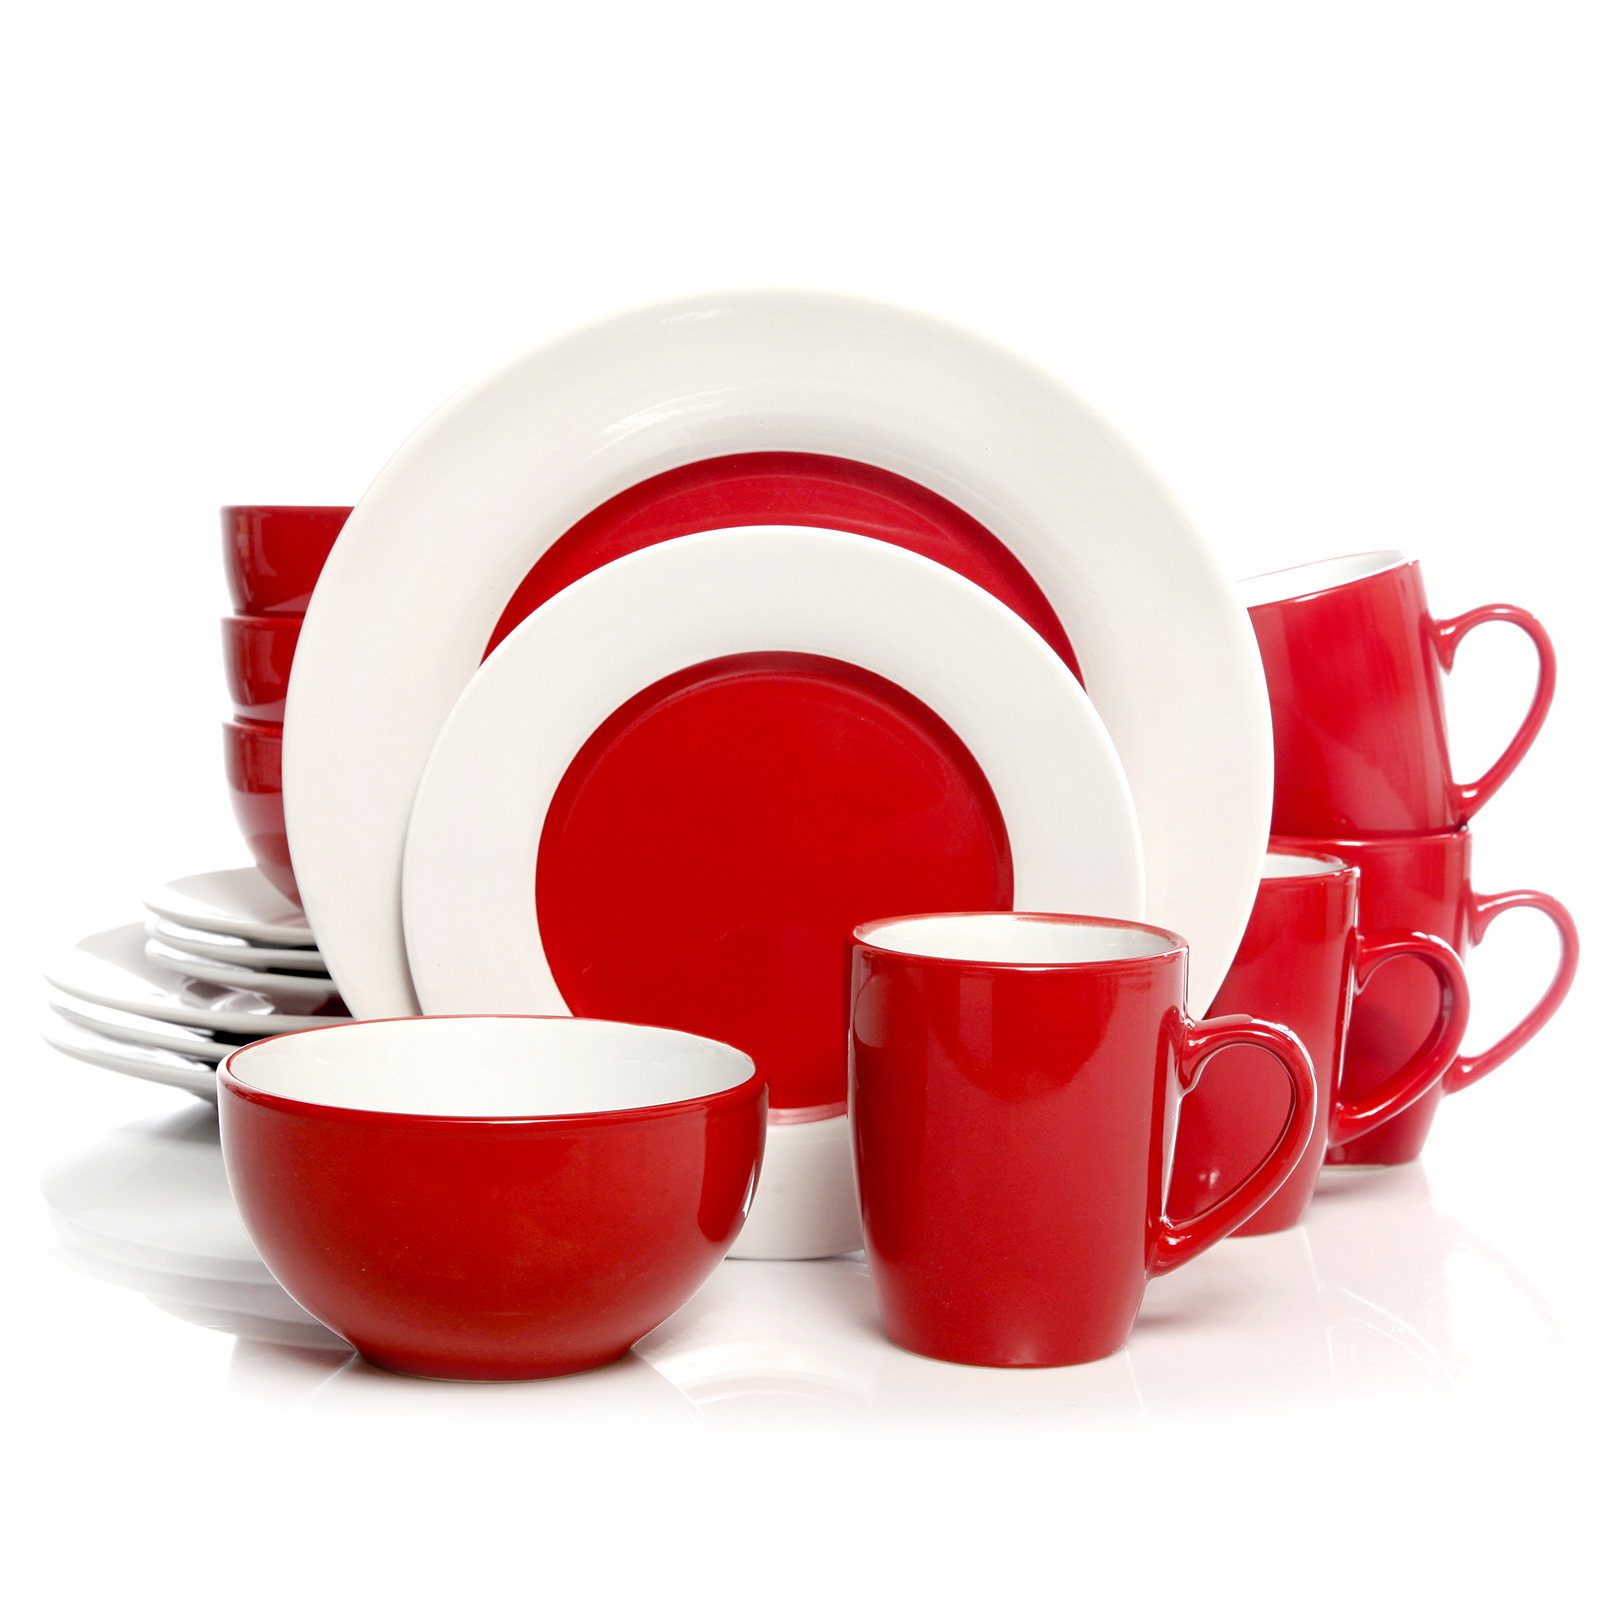 Gibson Home Style Deluxe 16-Piece Dinnerware Set Red  sc 1 st  Walmart & Gibson Home Style Deluxe 16-Piece Dinnerware Set Red - Walmart.com